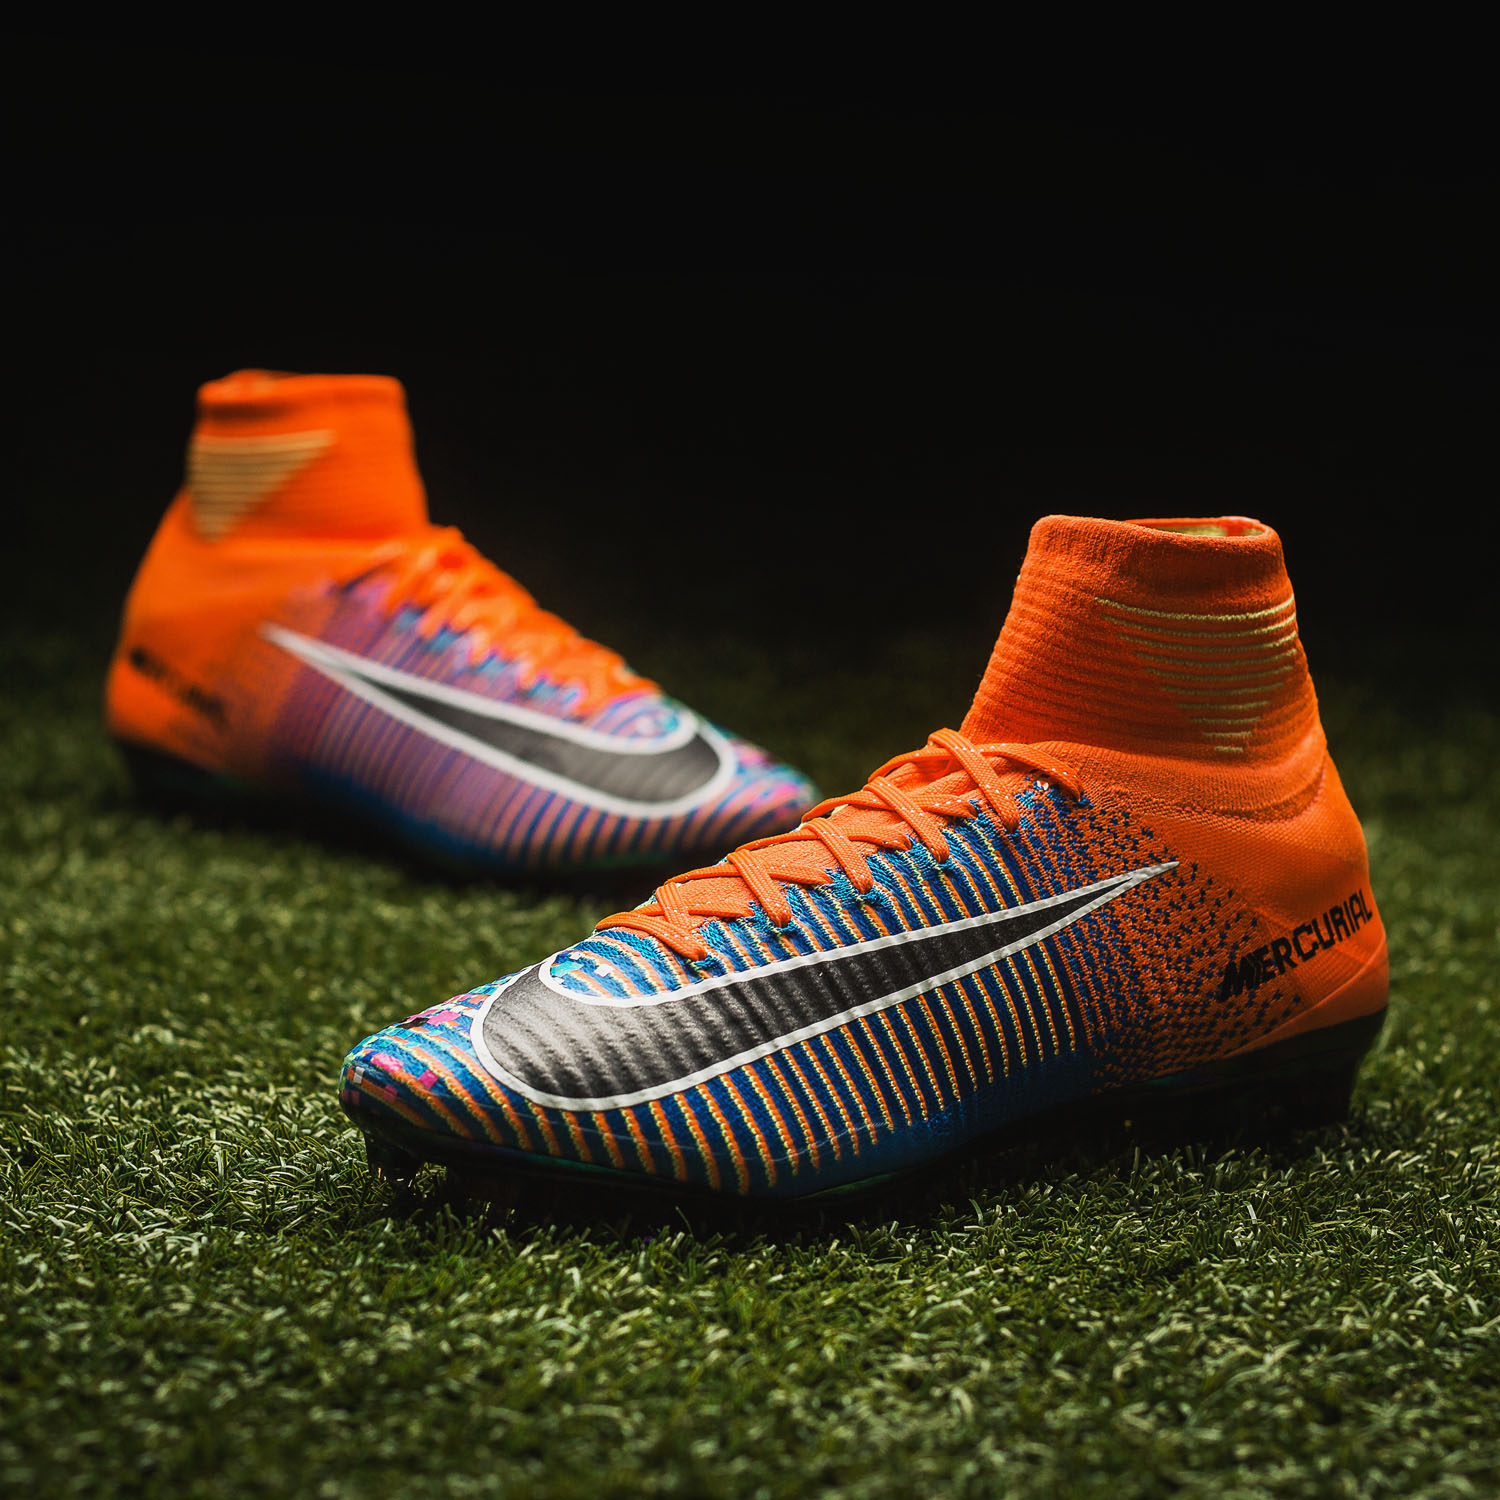 half off fa77d 22b70 Nike Mercurial X EA SPORTS | Just 1500 pairs of indivually ...